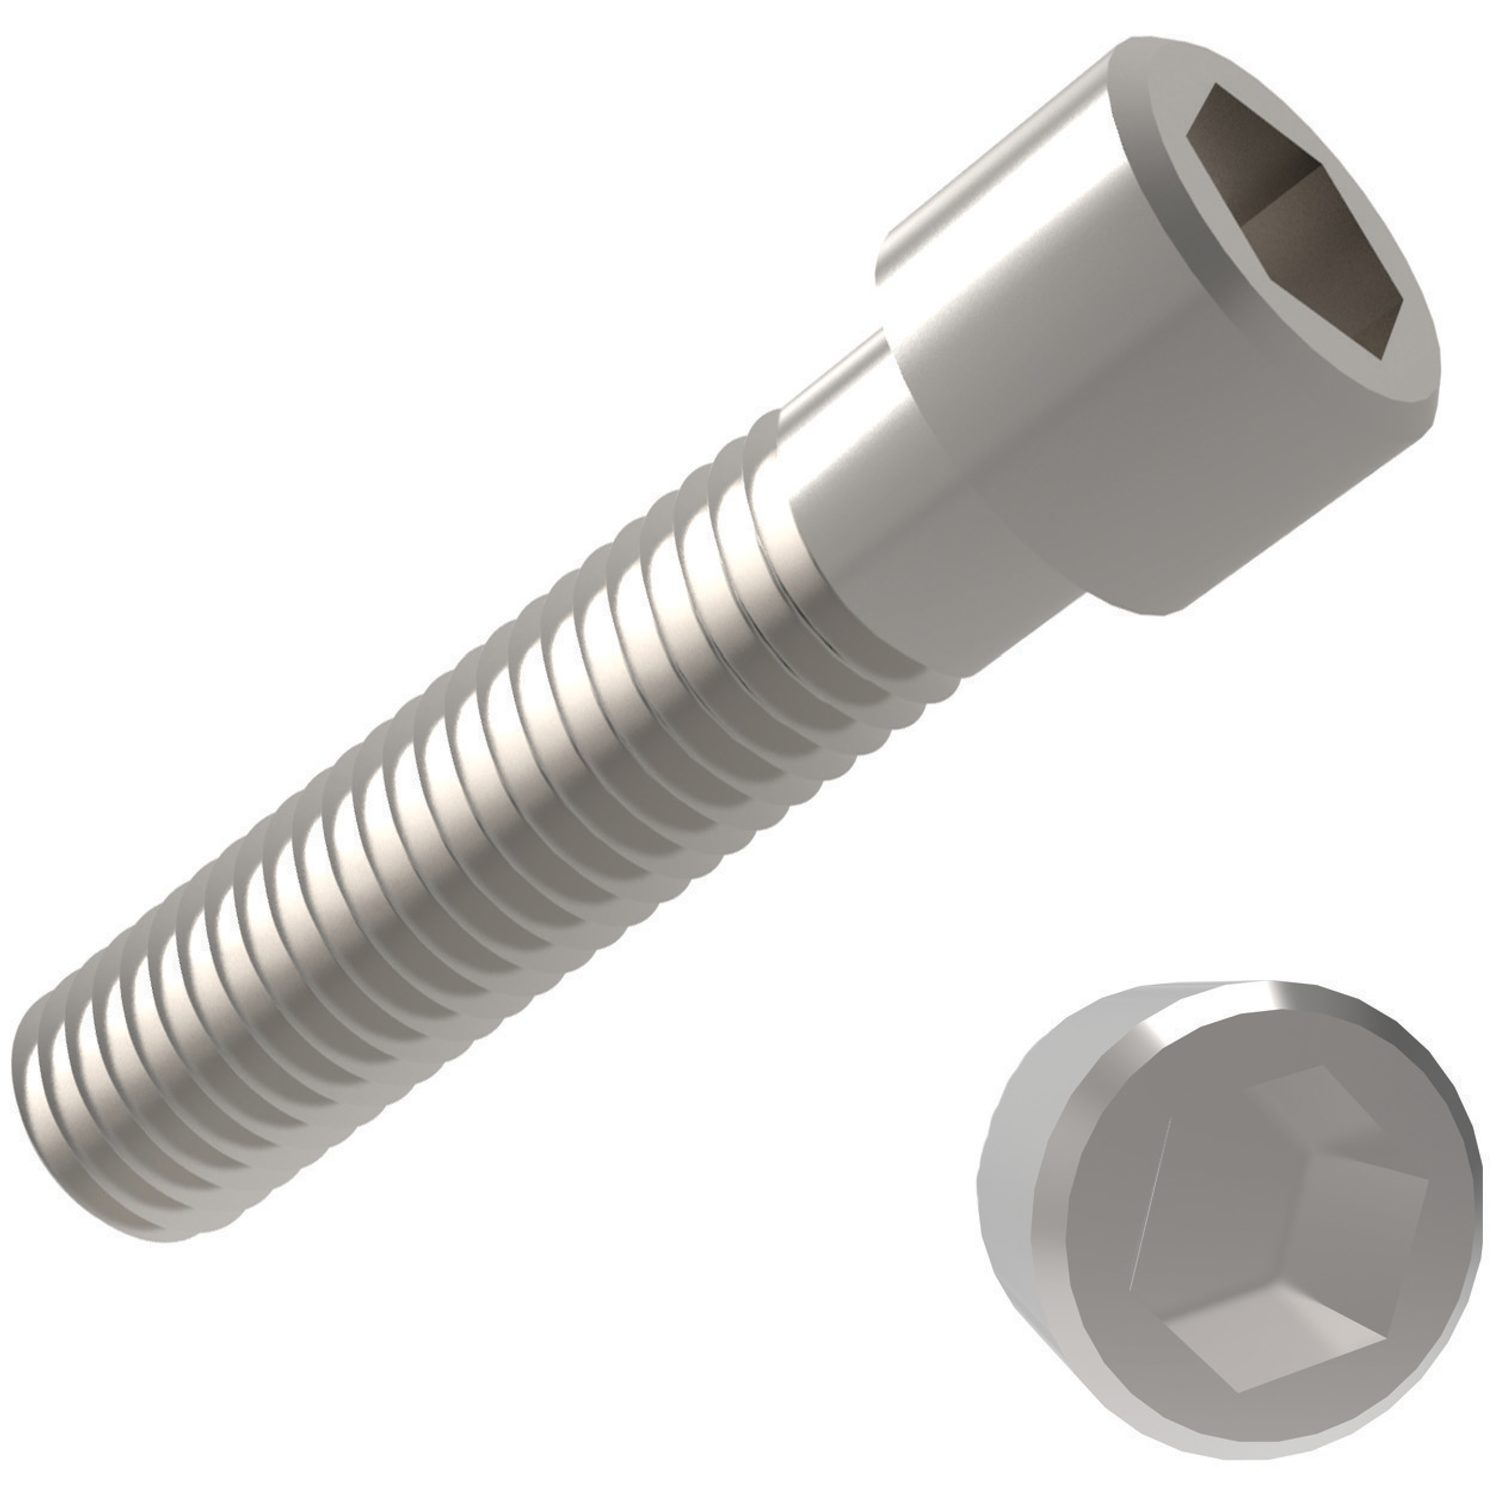 P0200.ZP - Socket Cap Screws